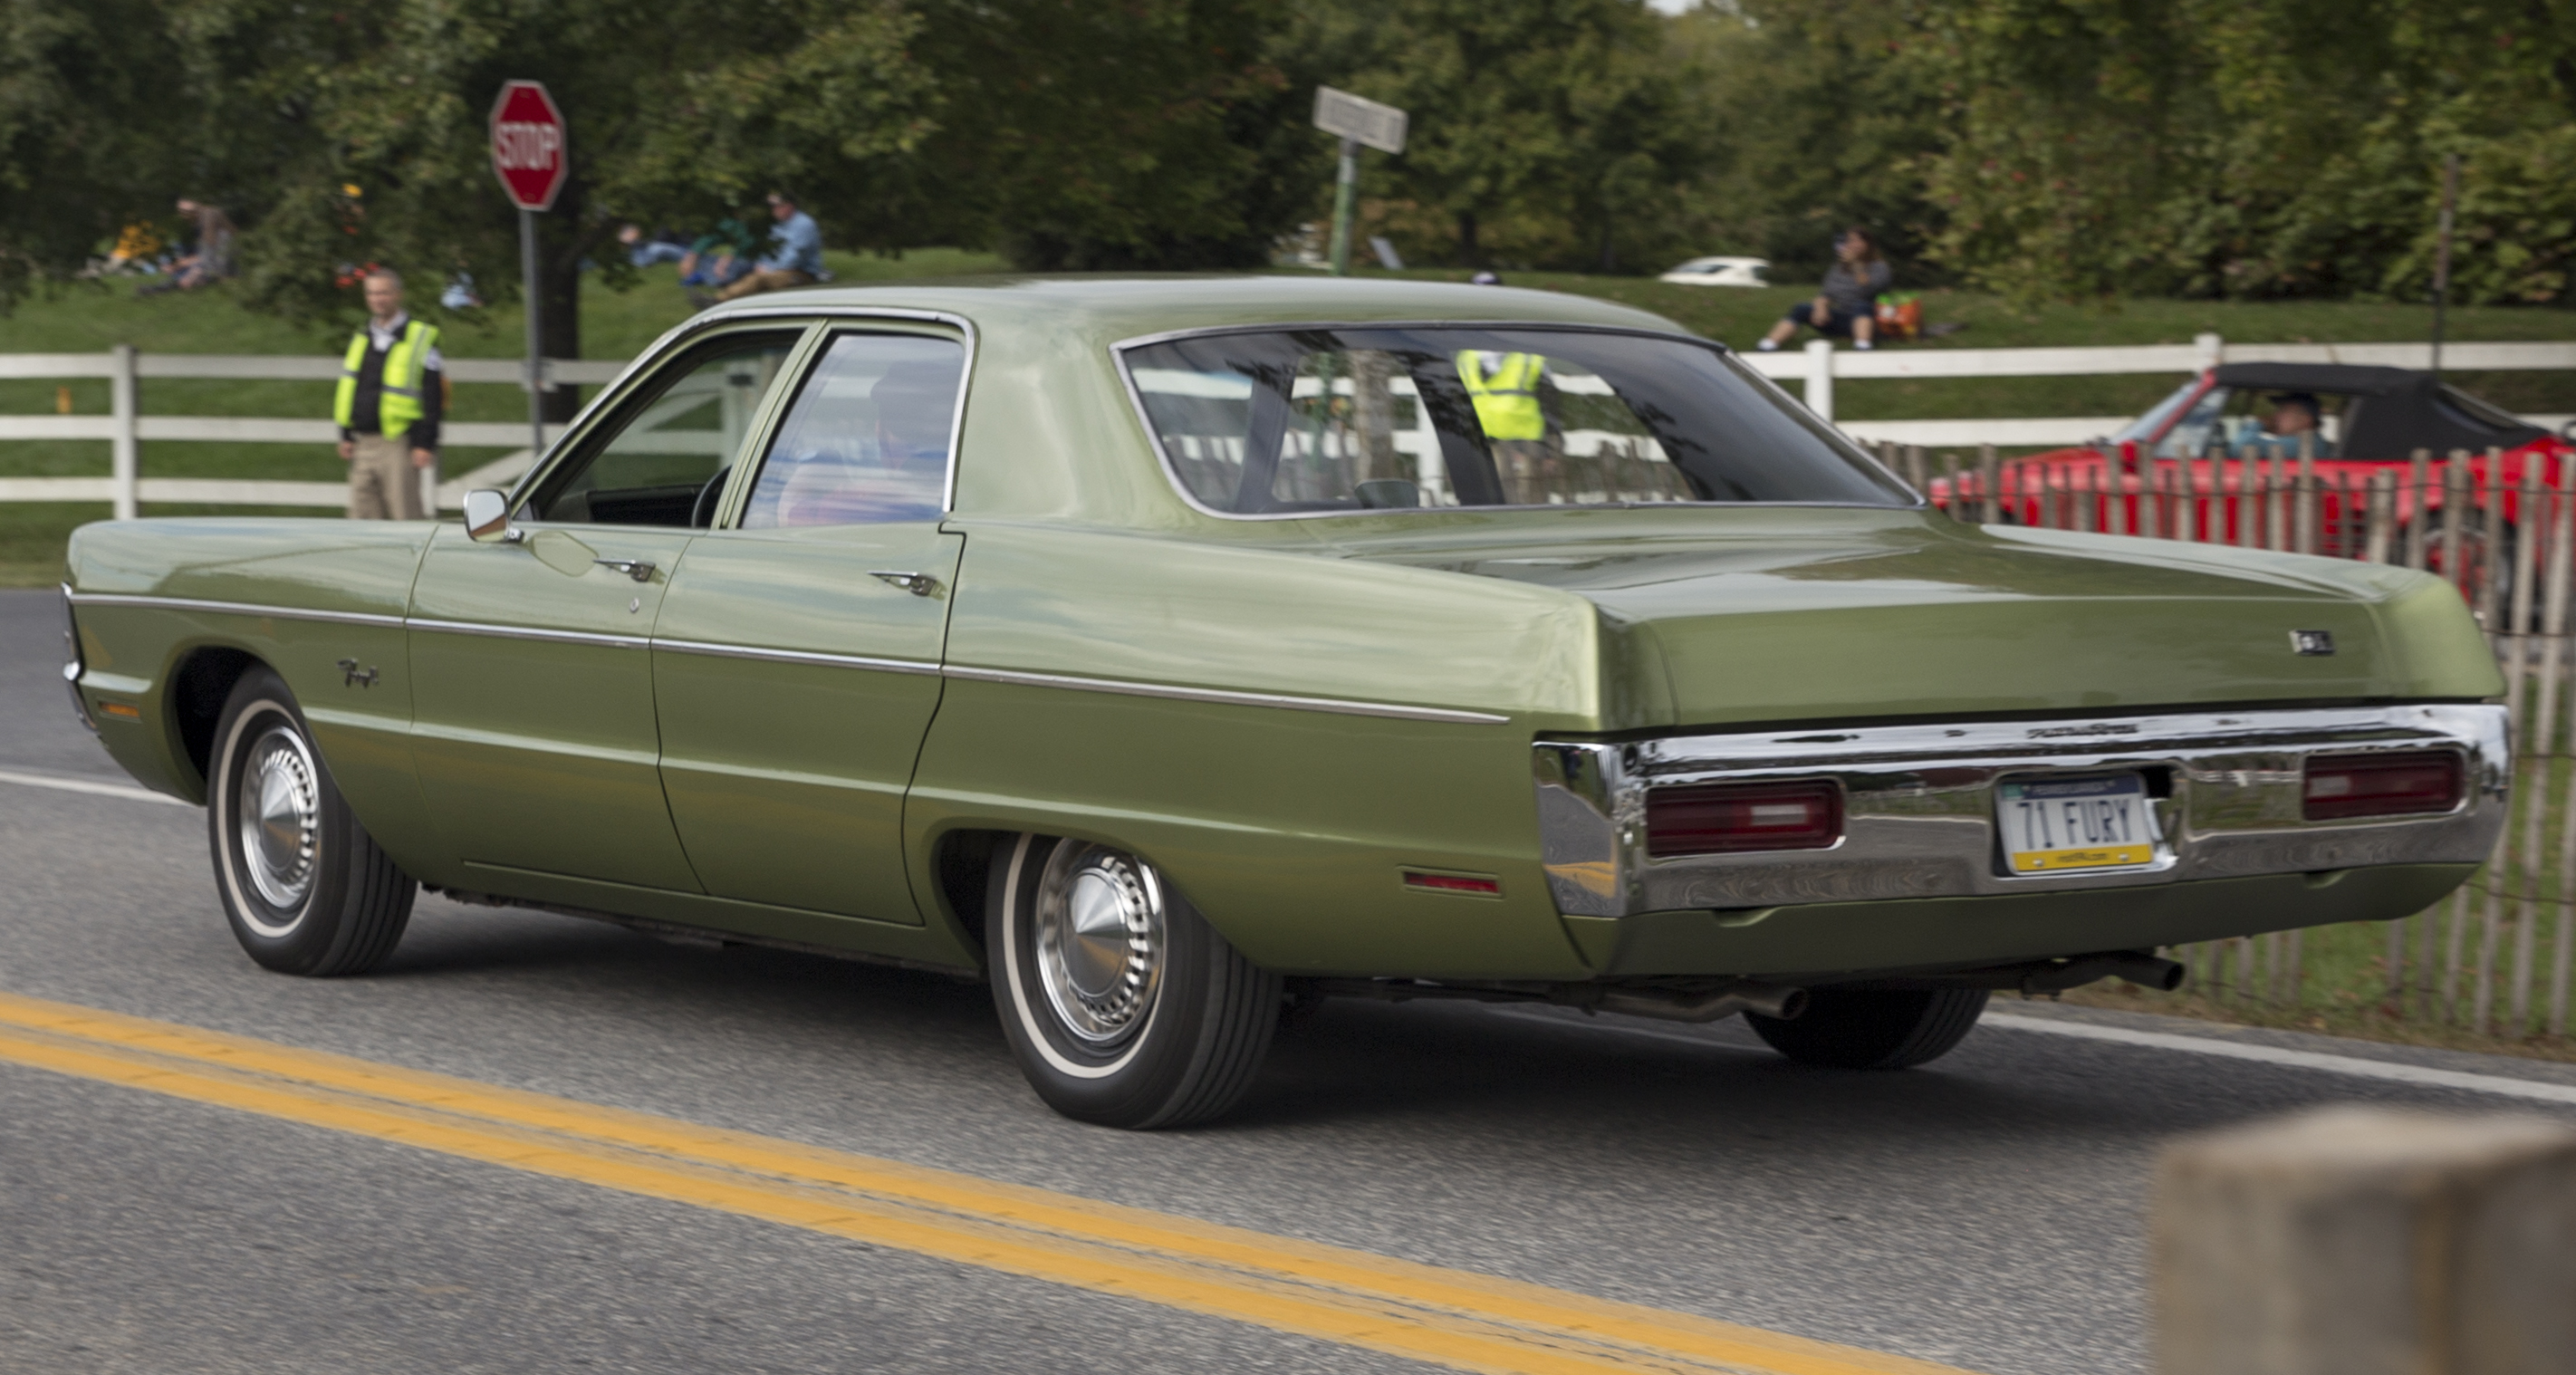 14. 1971 Plymouth_Fury_II